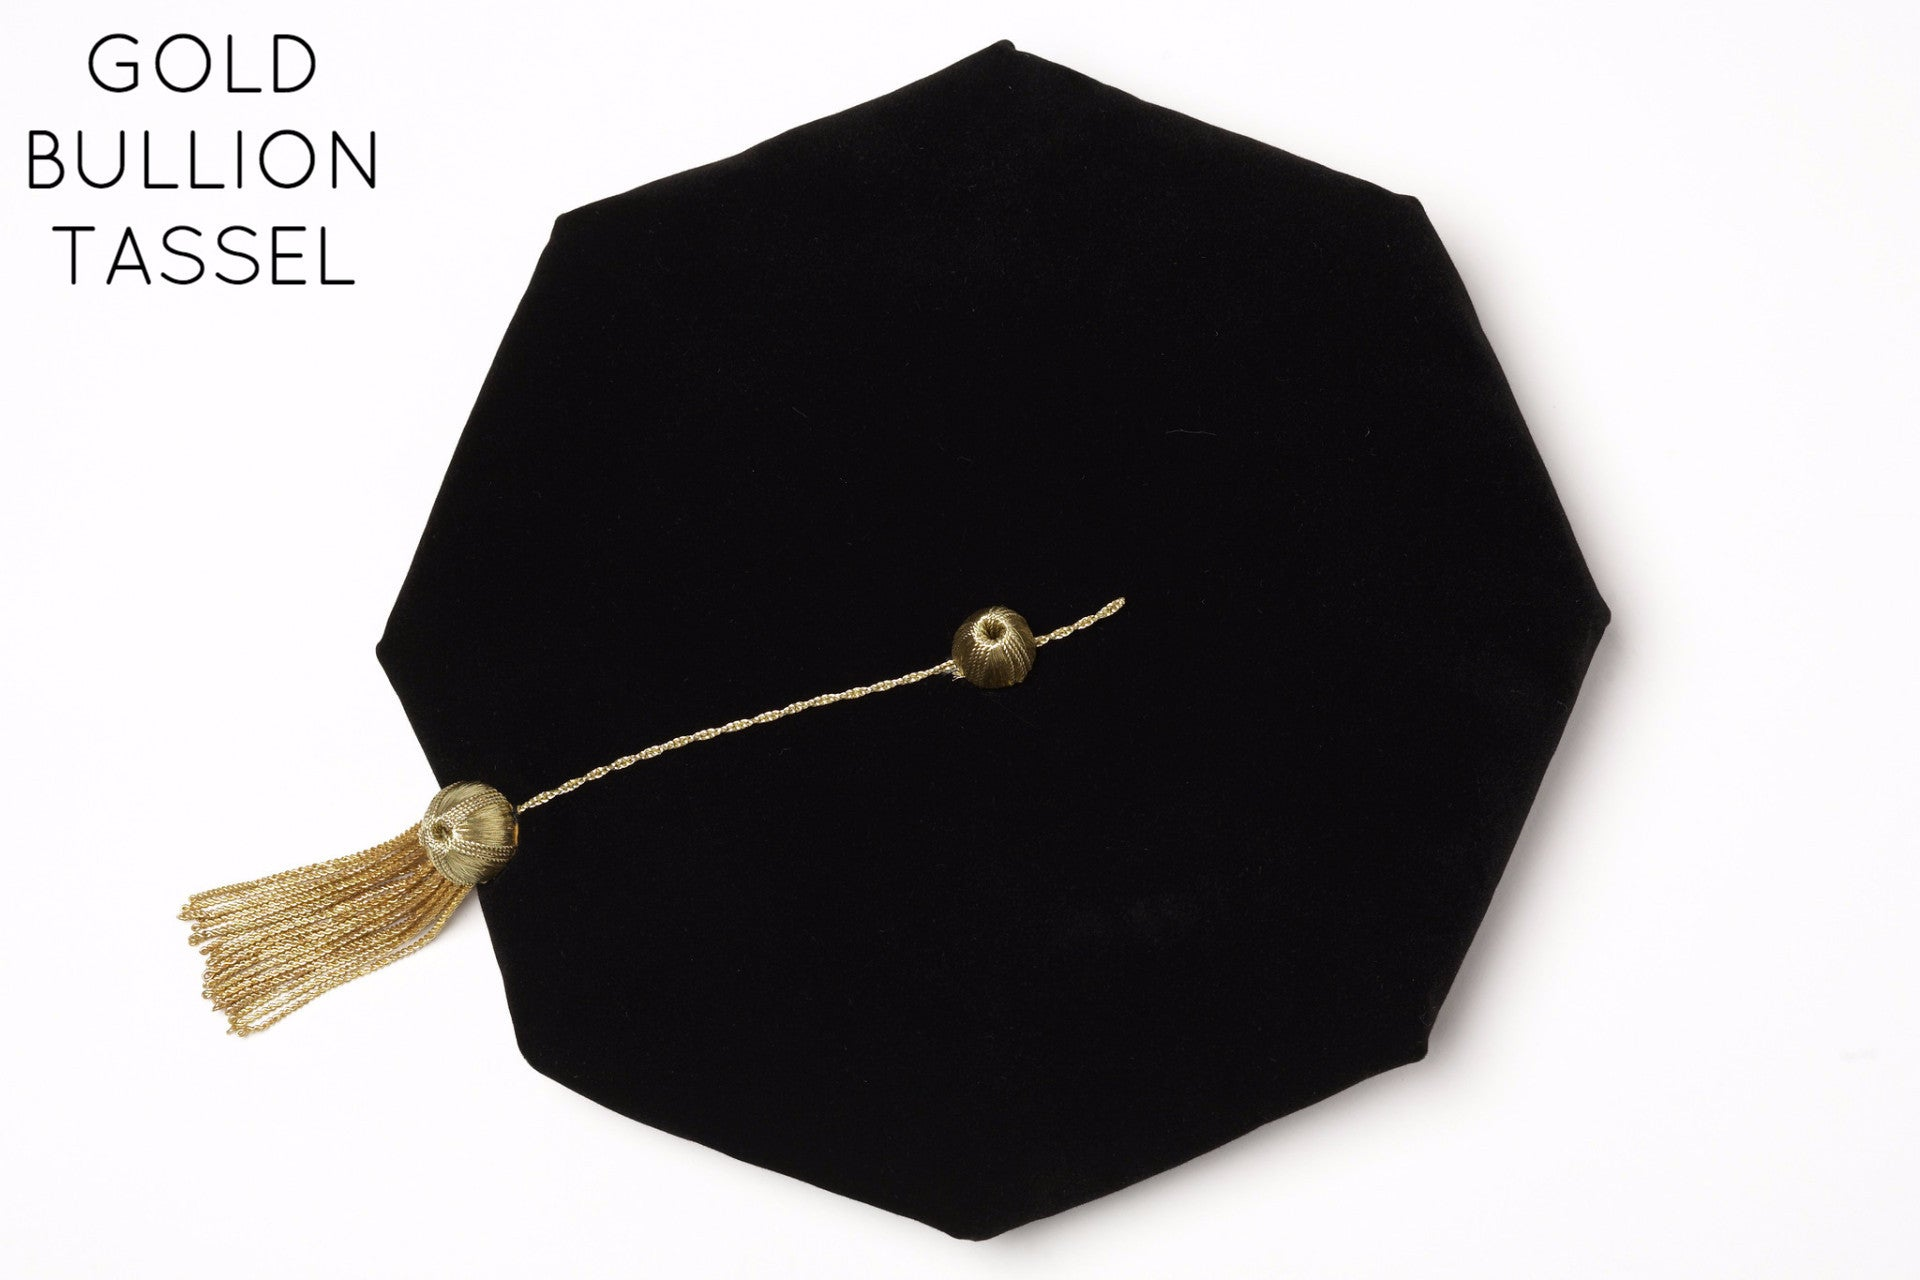 Princeton University 8-Sided Doctoral Tam (Cap) with Gold Tassel